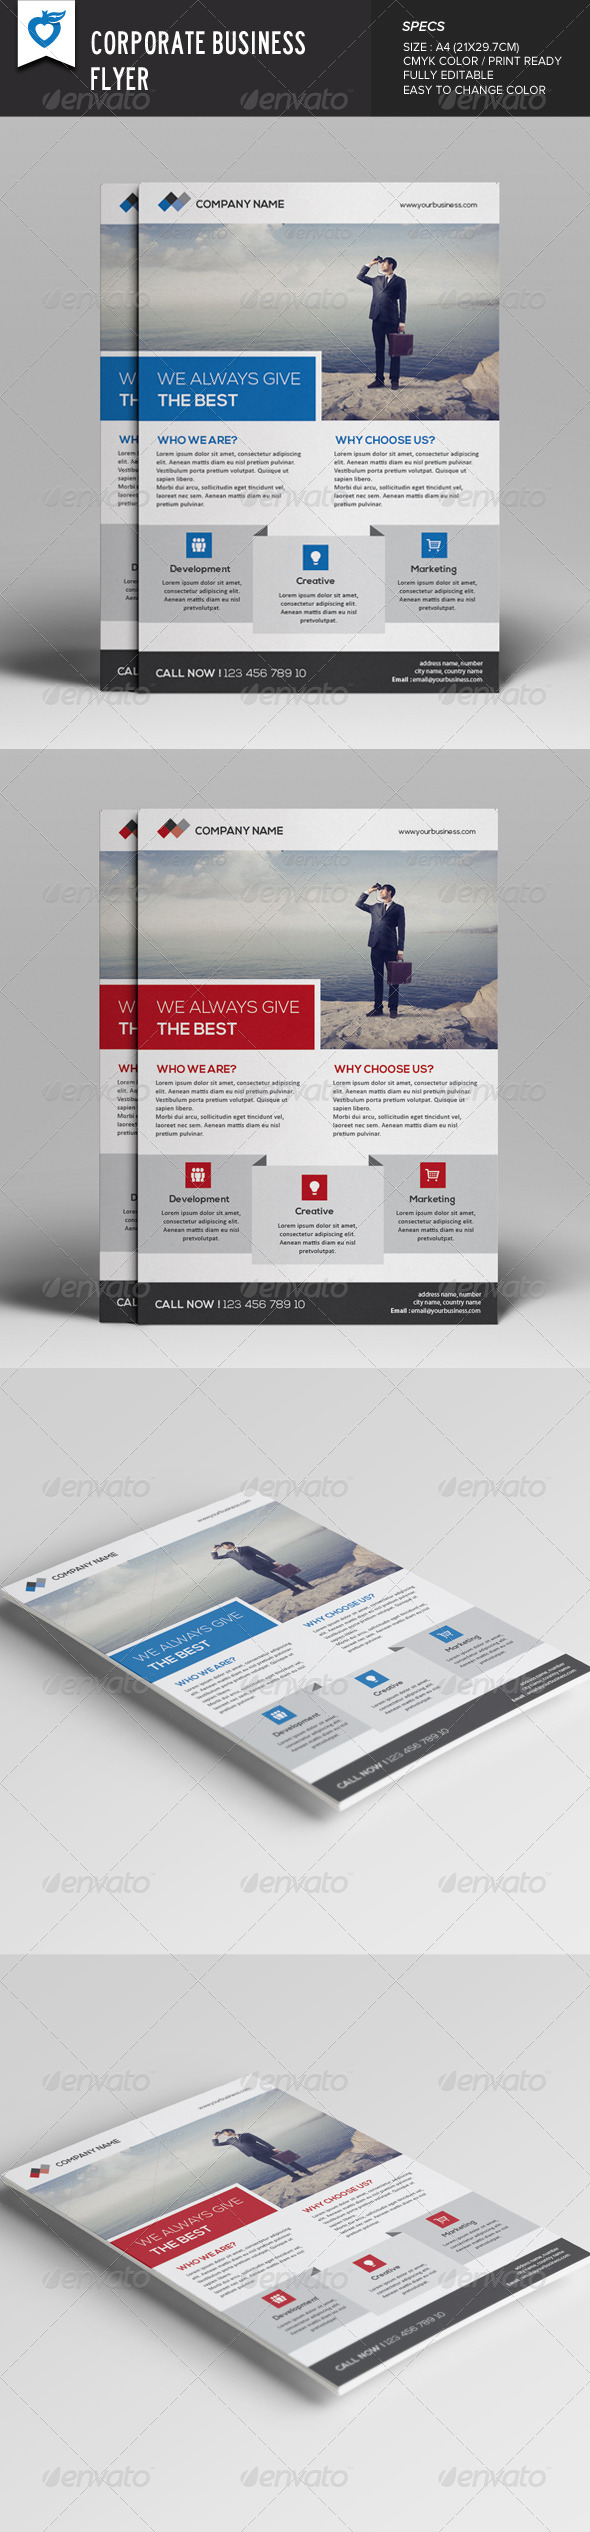 GraphicRiver Corporate Business Flyer v11 8049156